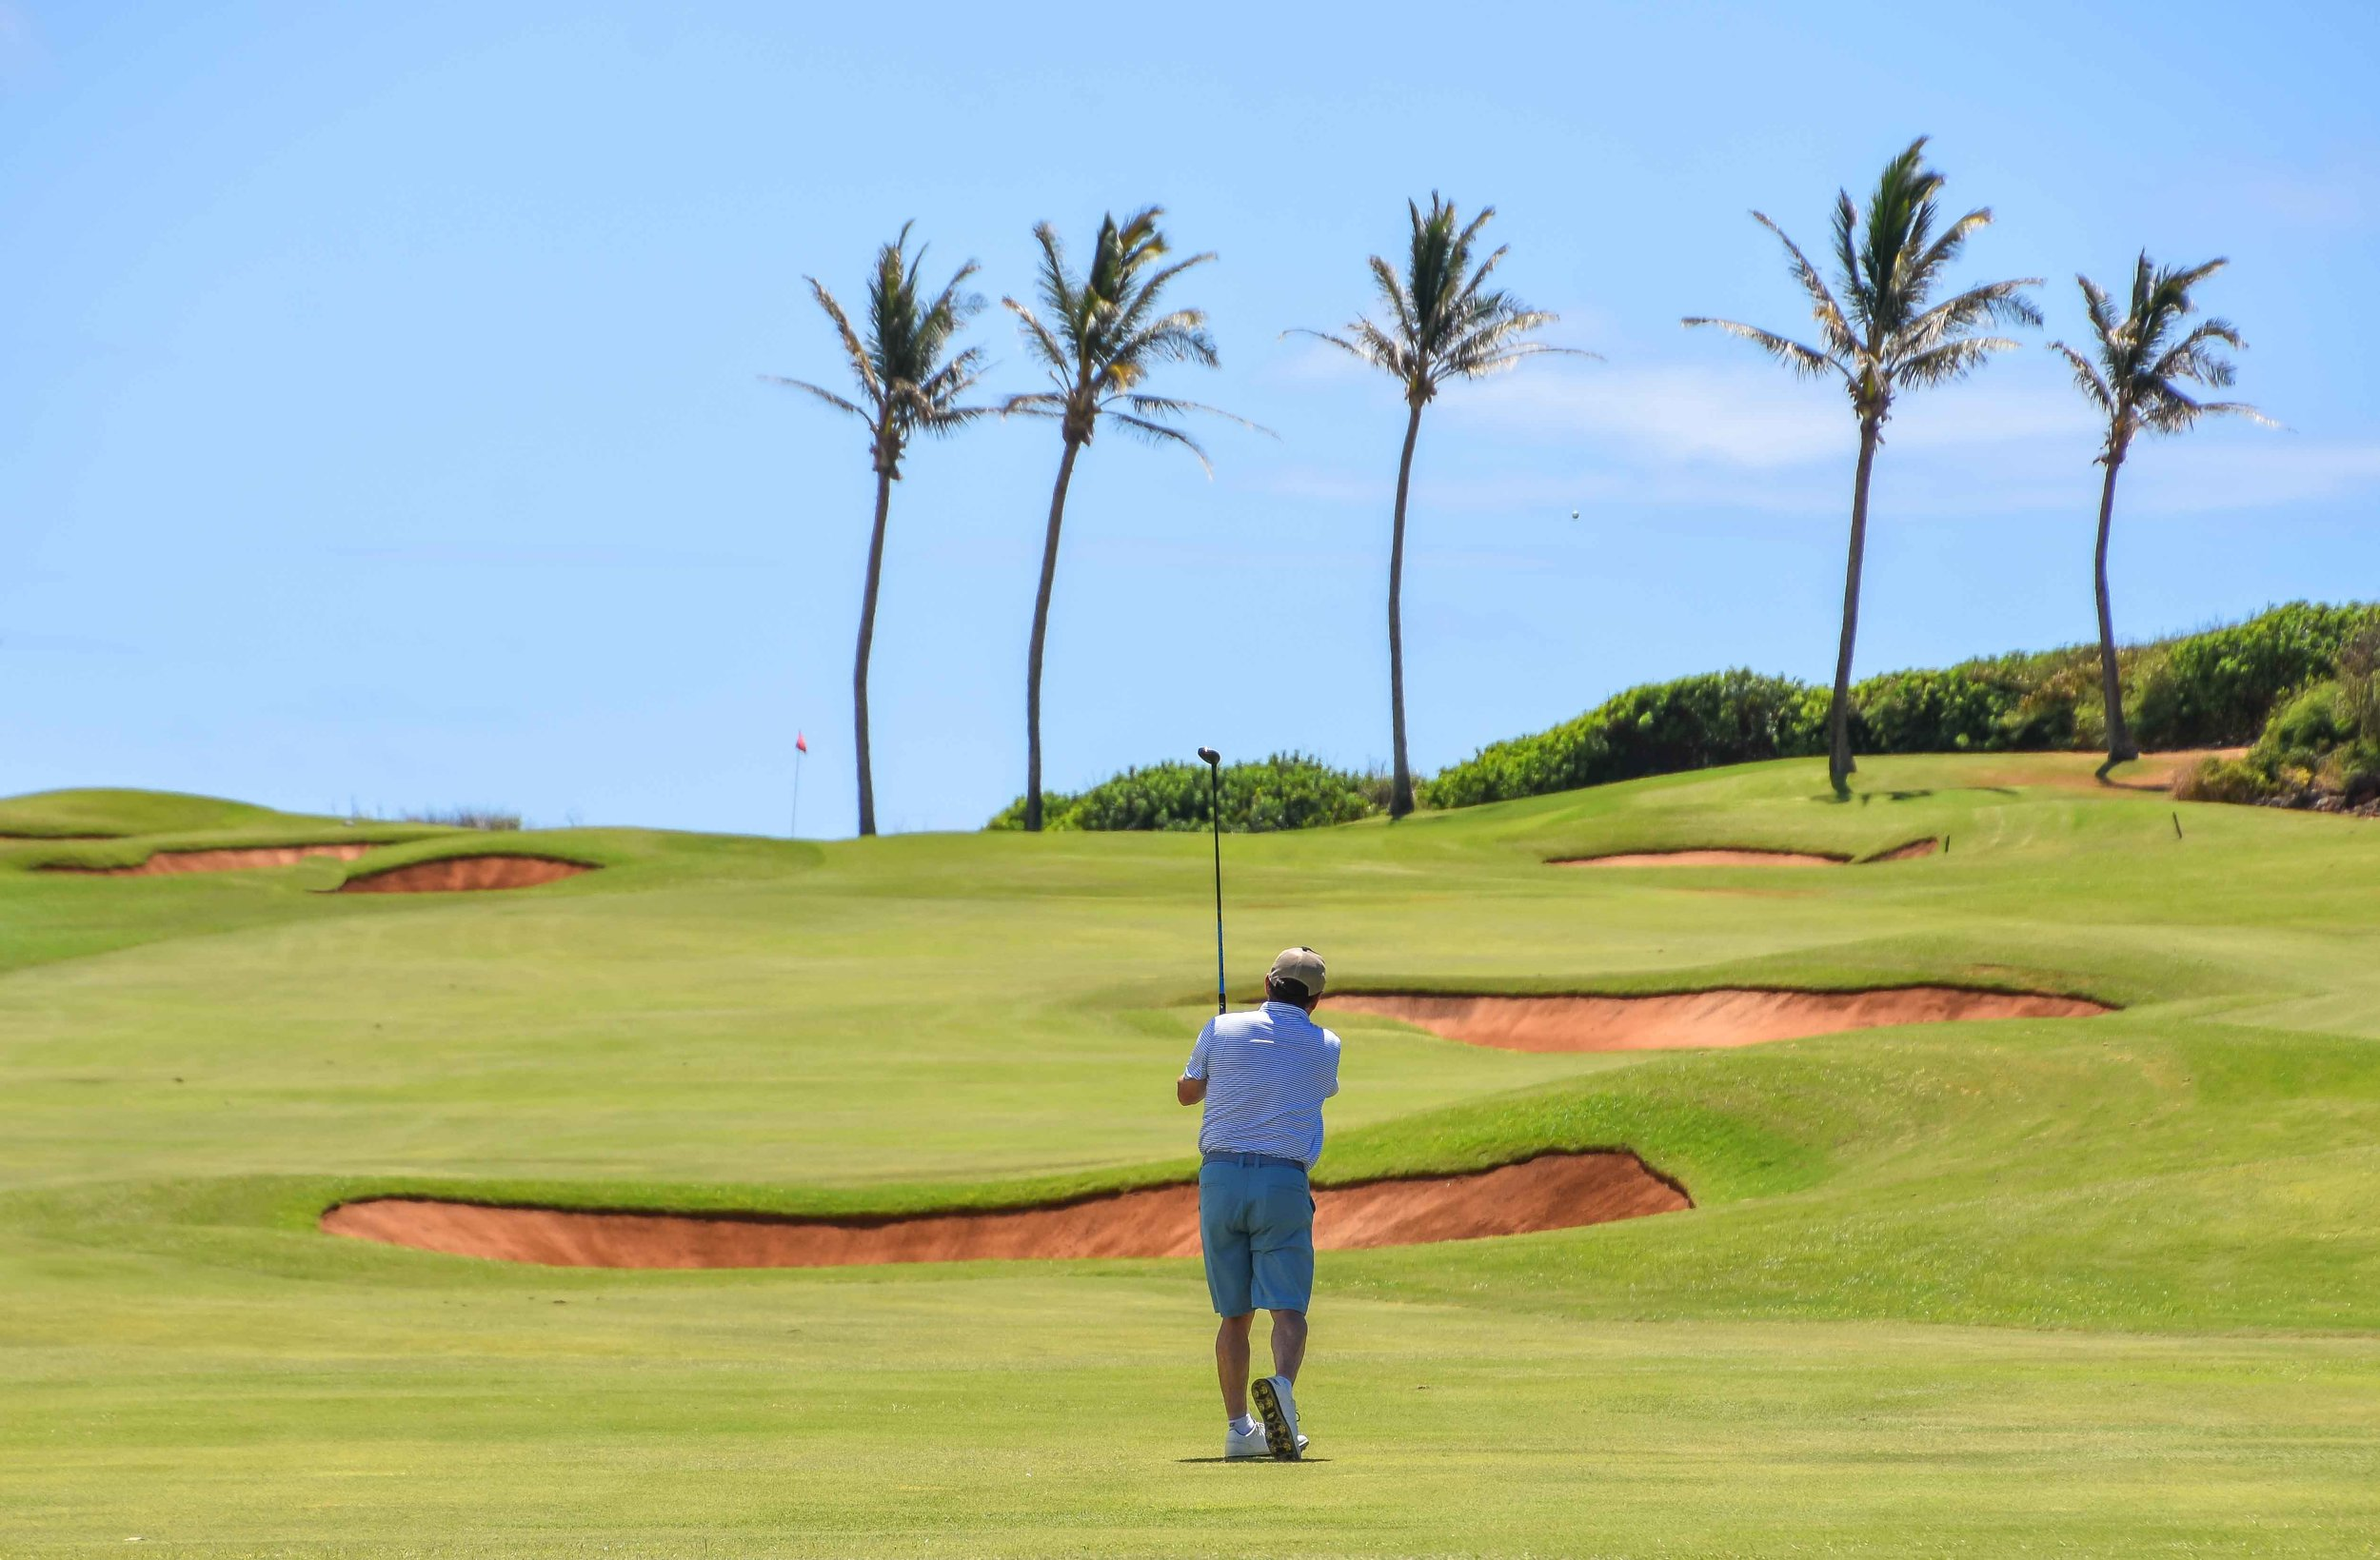 Mike Bailey sends one screaming into the 15th hole at Poipu Bay.